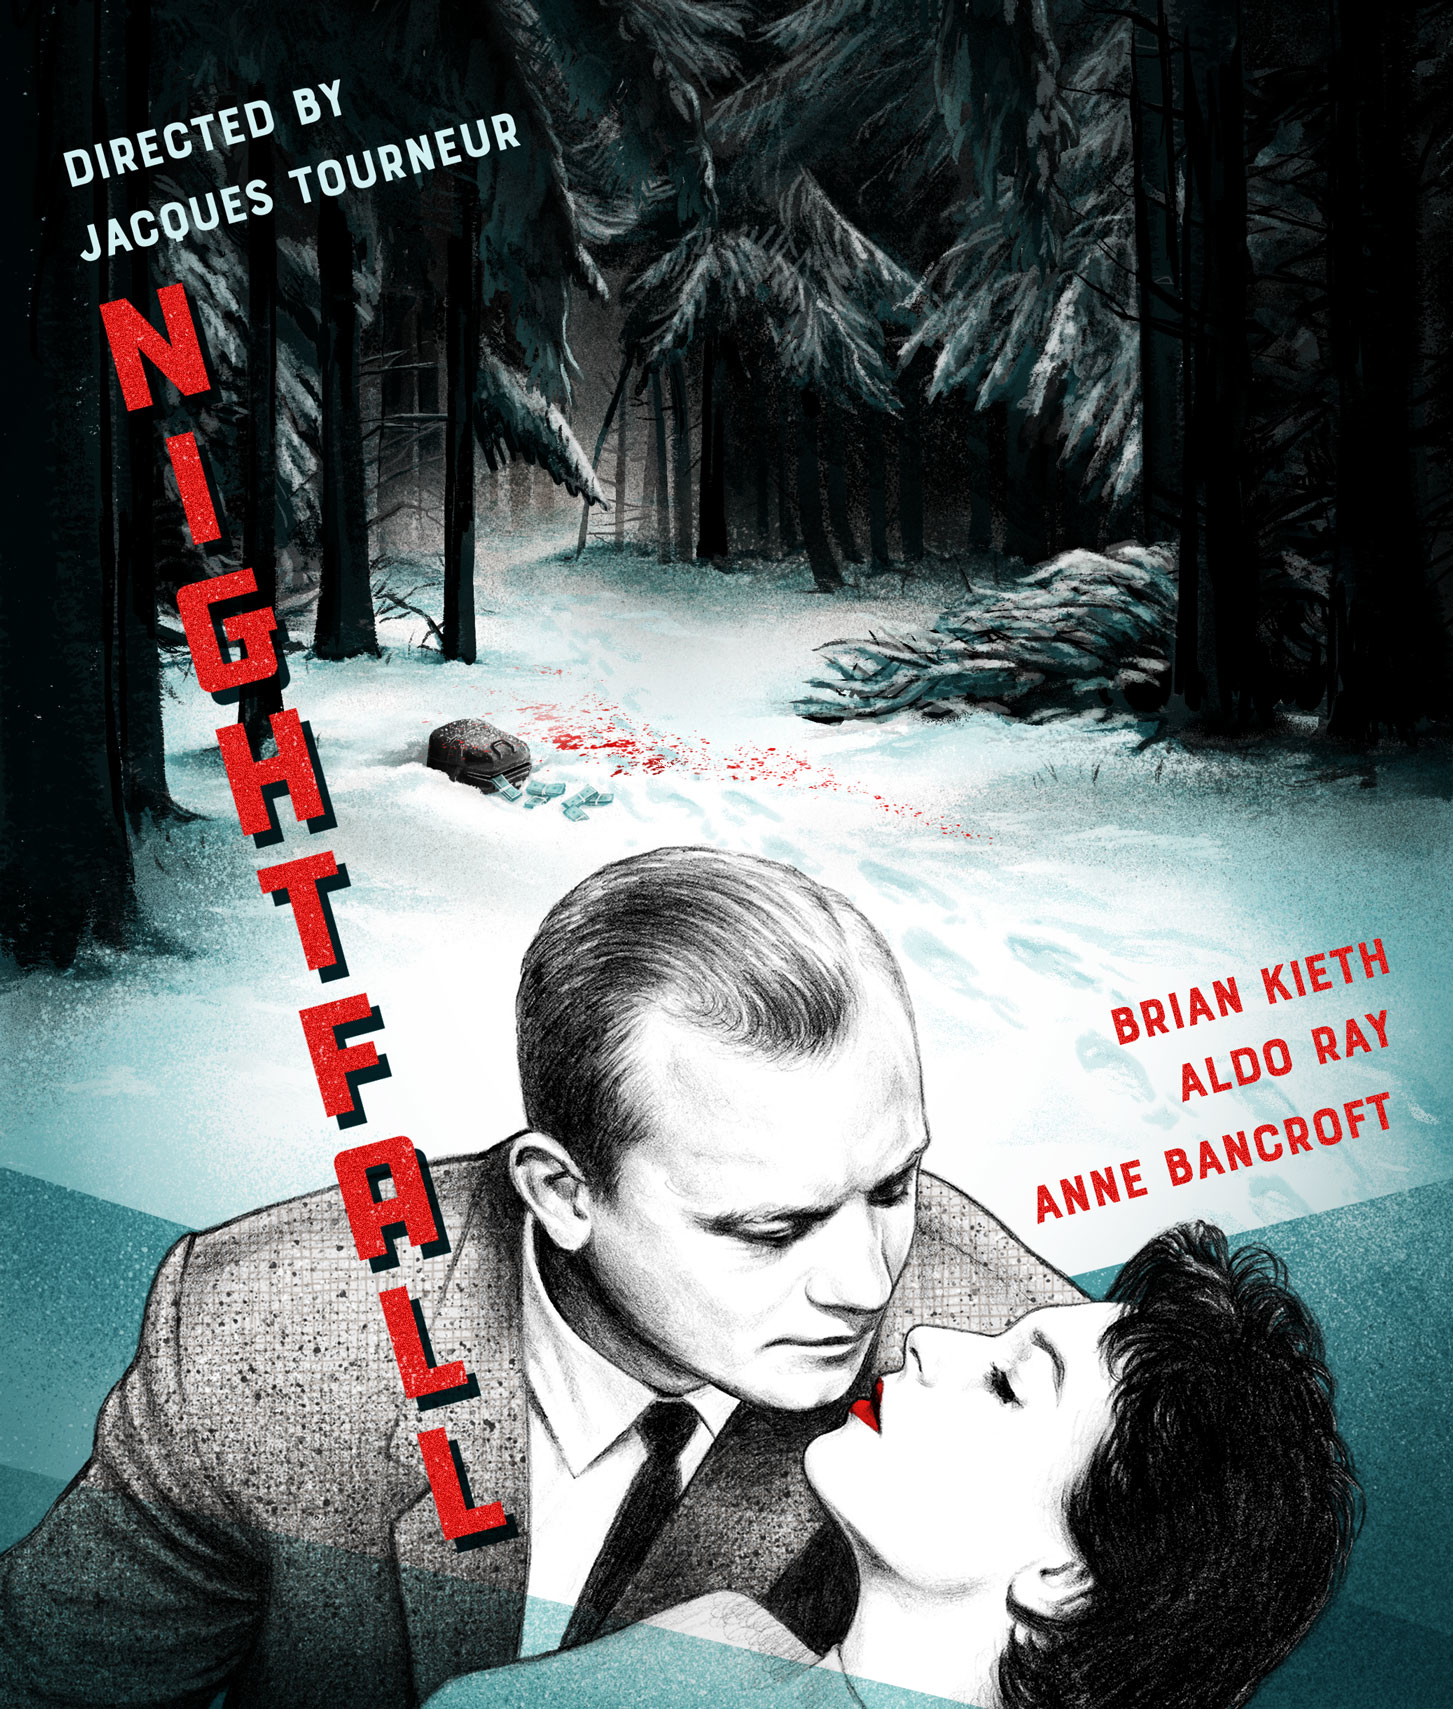 Nightfall-film-noir-illustration-artwork-alternative-poster-vintage-drawing-crime-jennifer-dionisio-jen copy.jpg